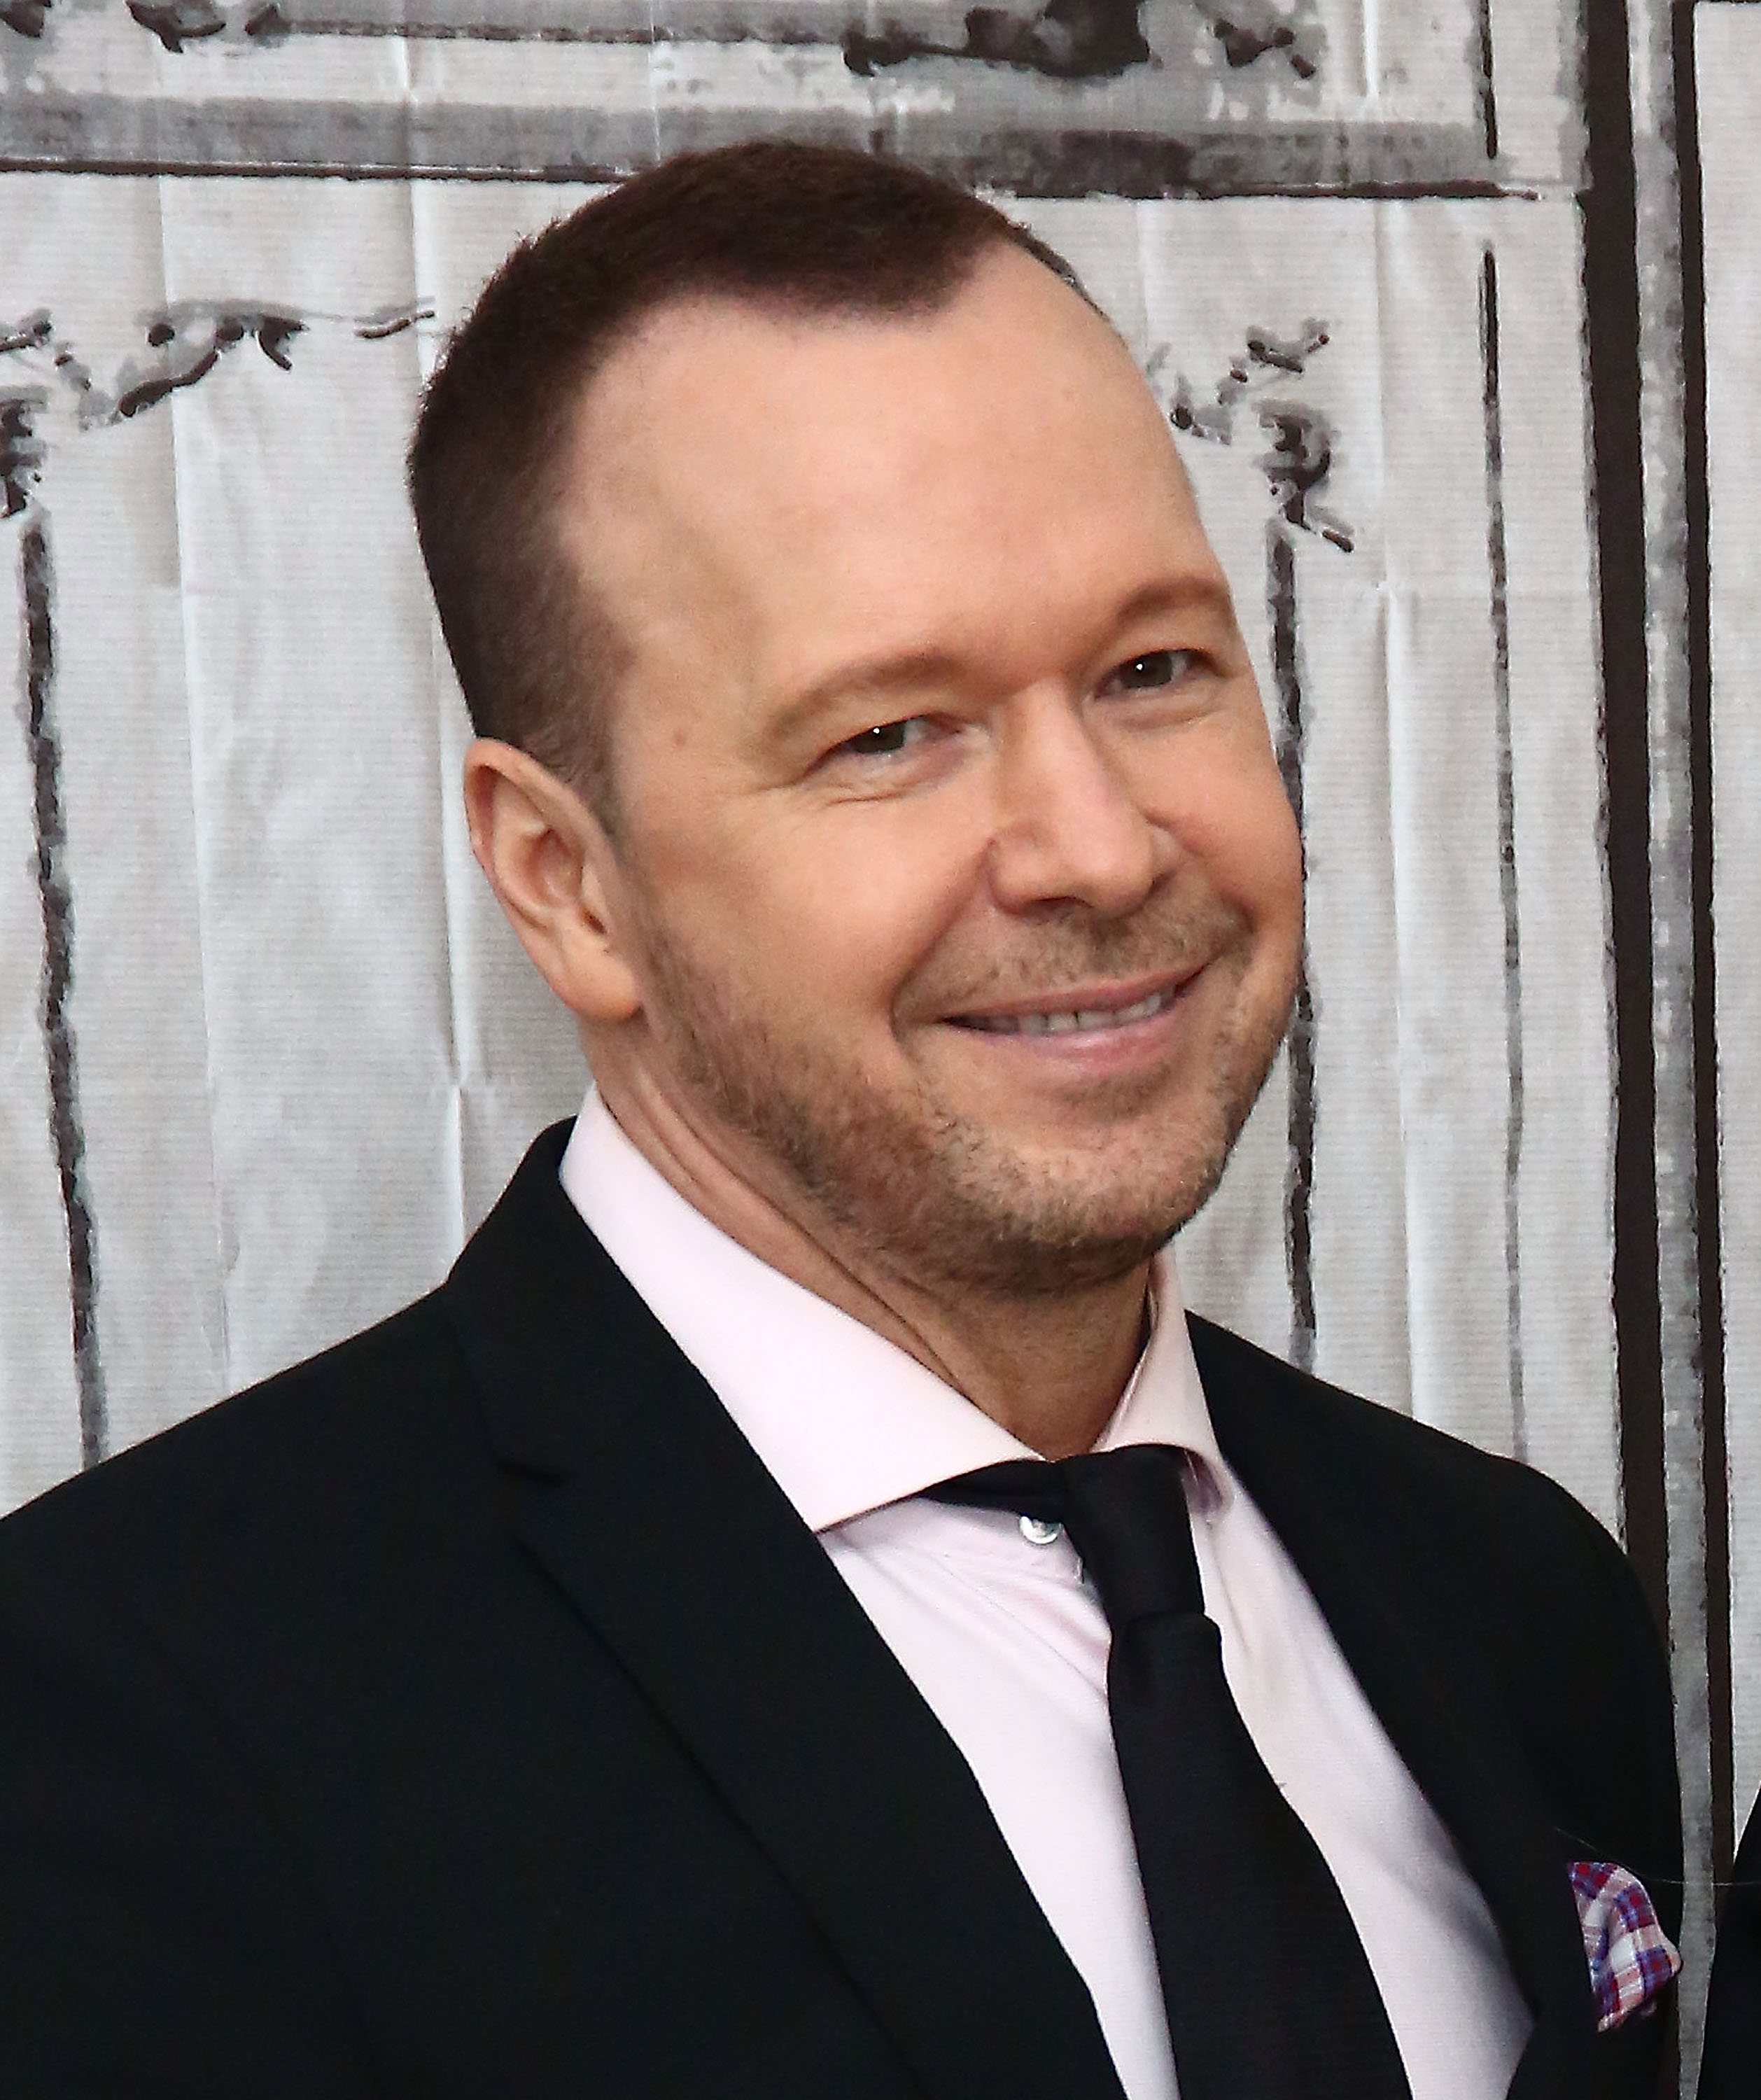 """Donnie Wahlberg attends AOL Build Presents """"Donnie Loves Jenny"""" on March 16, 2016, in New York City.   Source: Getty Images."""